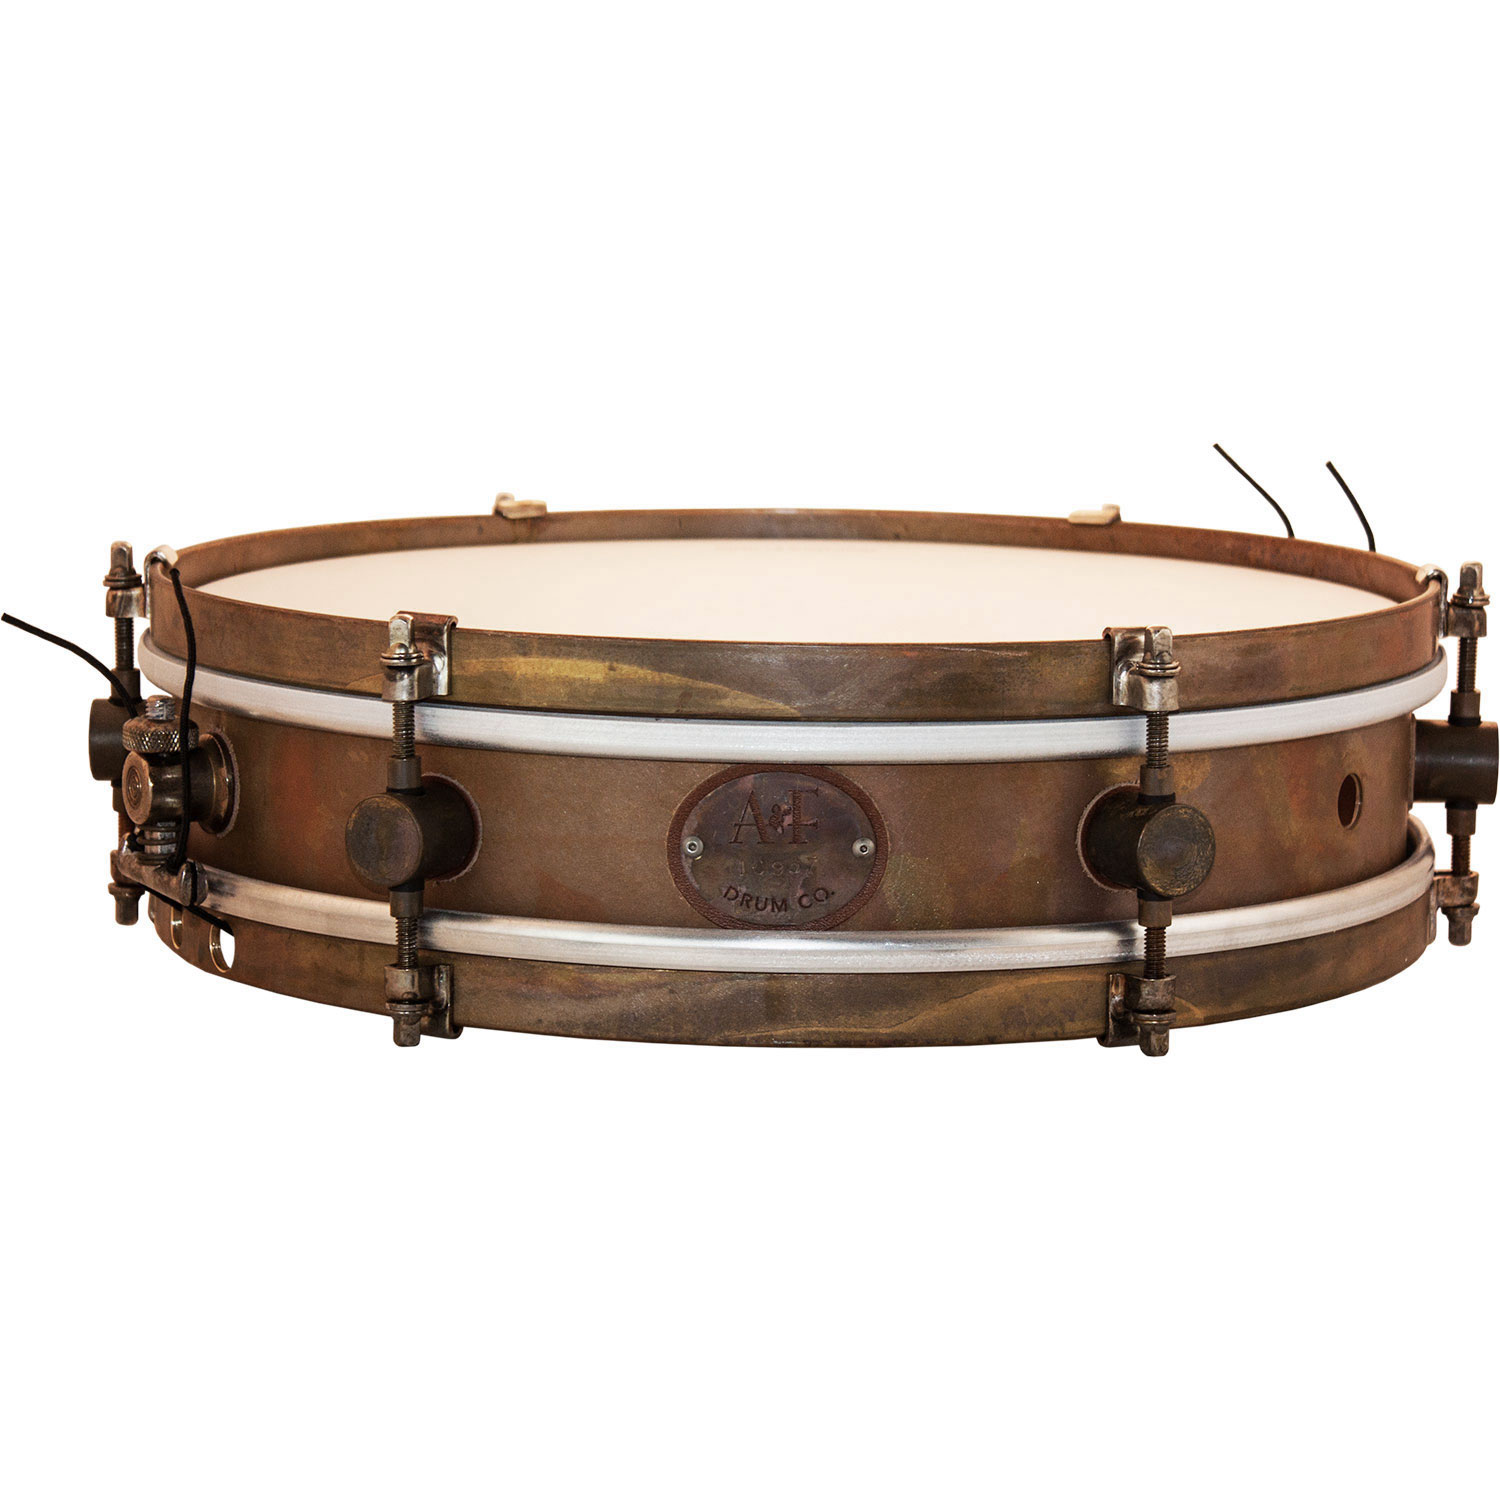 "A&F Drum Co. 3"" x 13"" Rude Boy Snare Drum"